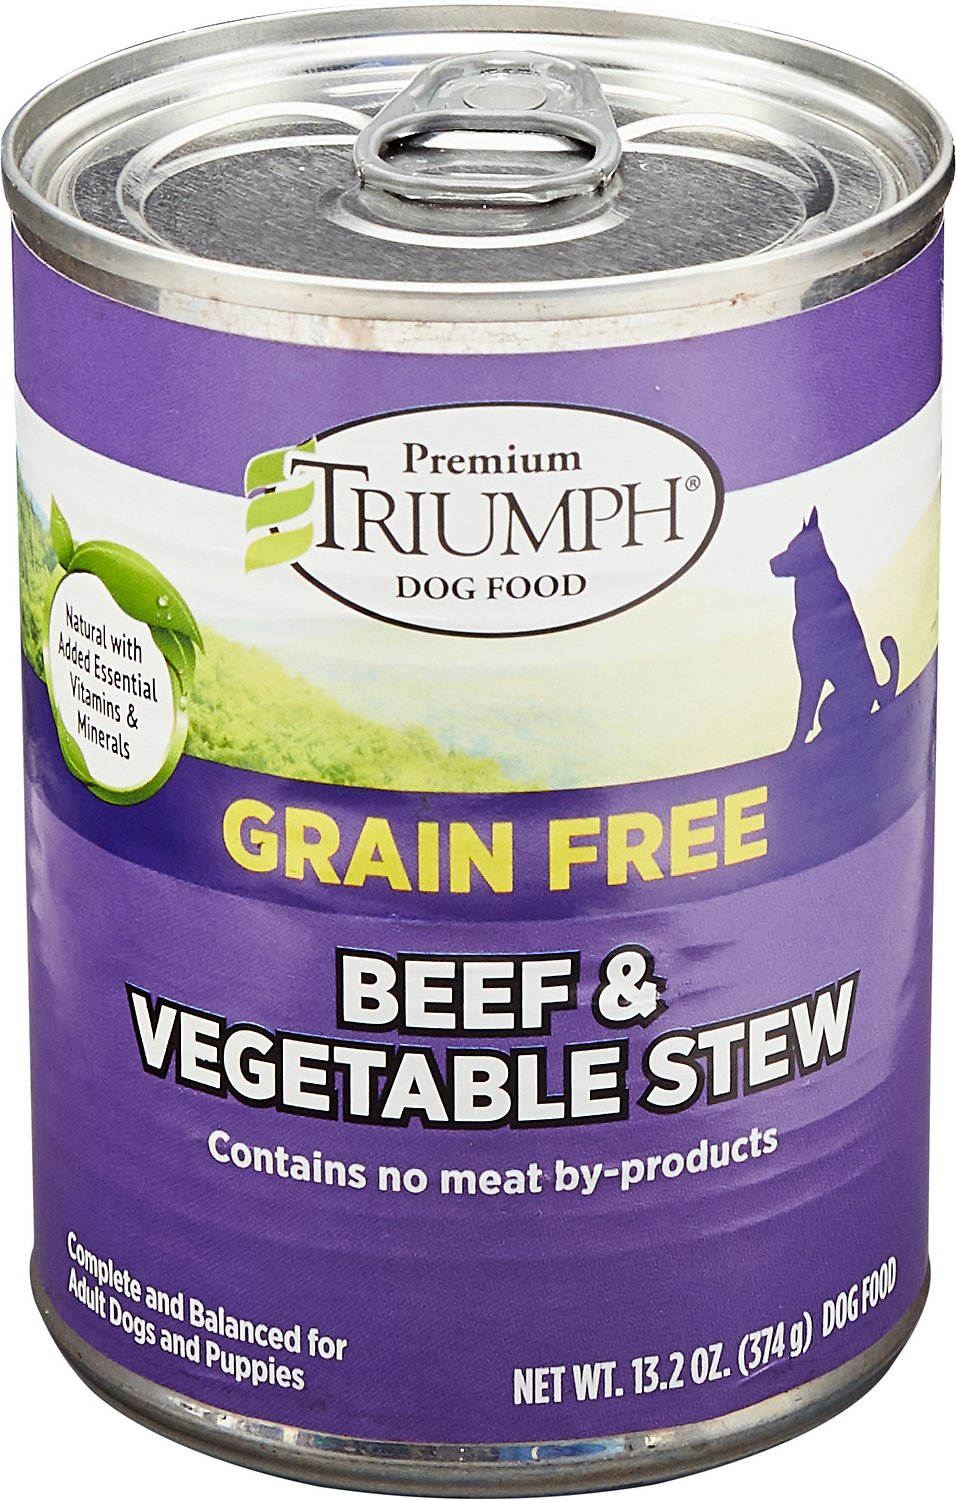 Triumph Grain-Free Beef & Vegetable Stew Canned Dog Food, 13.2-oz